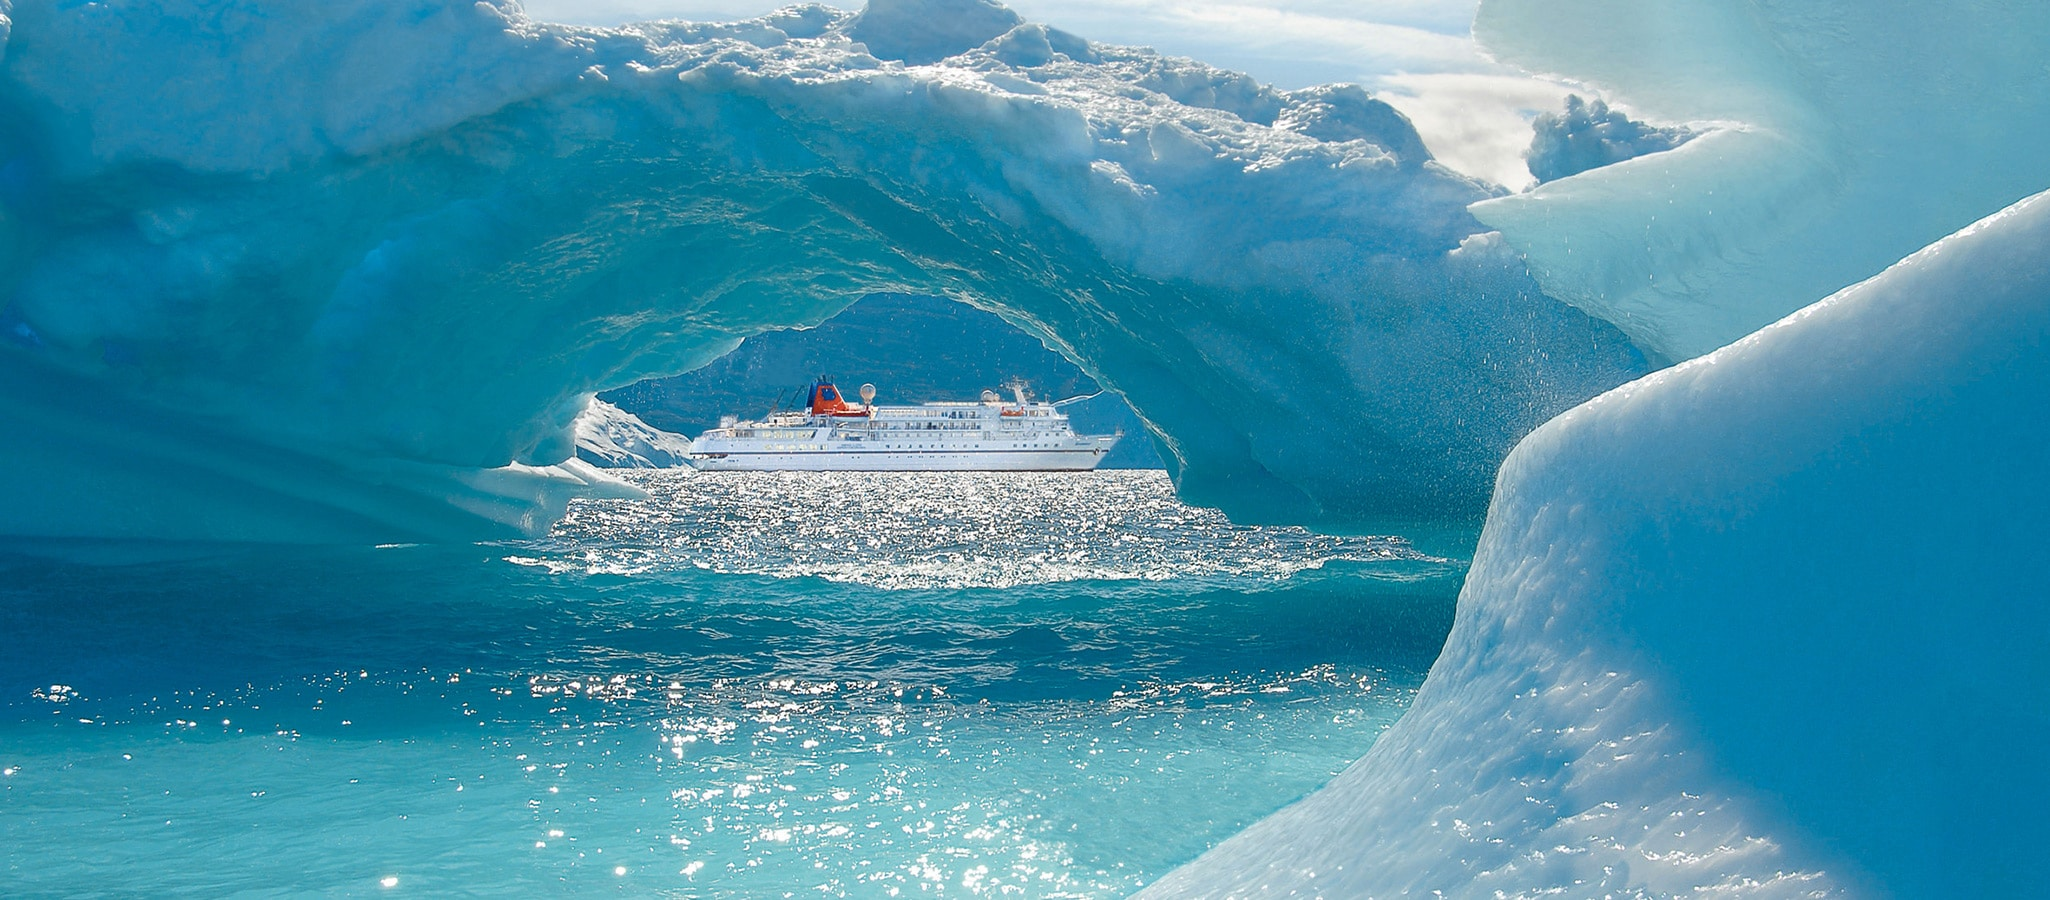 Certified with the highest ice class, boutique ships can take your guests to Arctic regions.